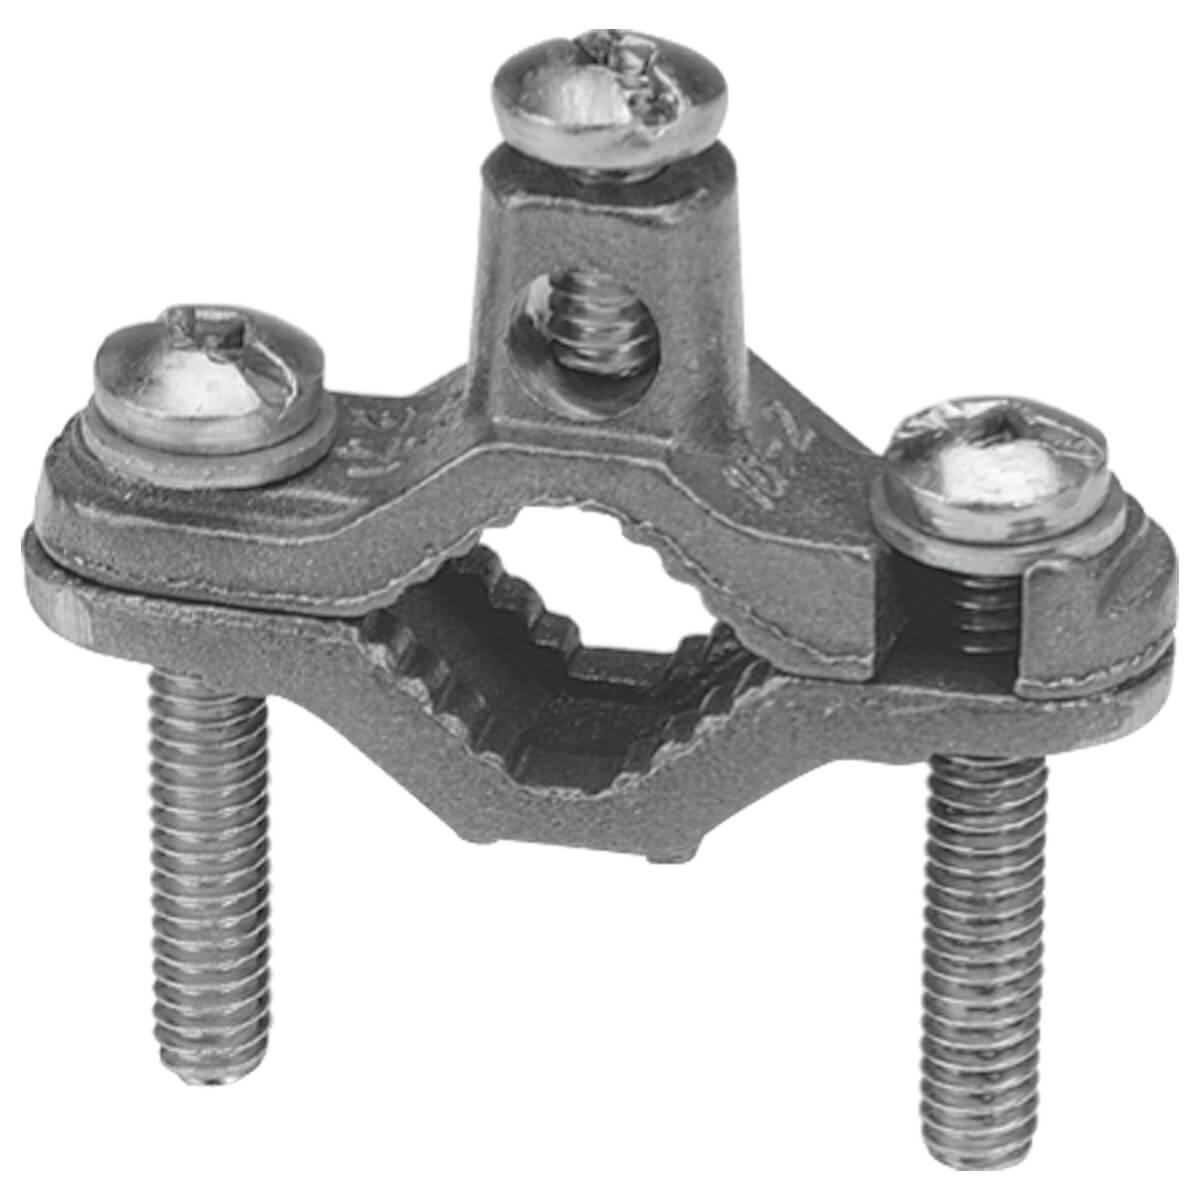 Copper Ground Clamp  - 1/2-in to 1-in pipe